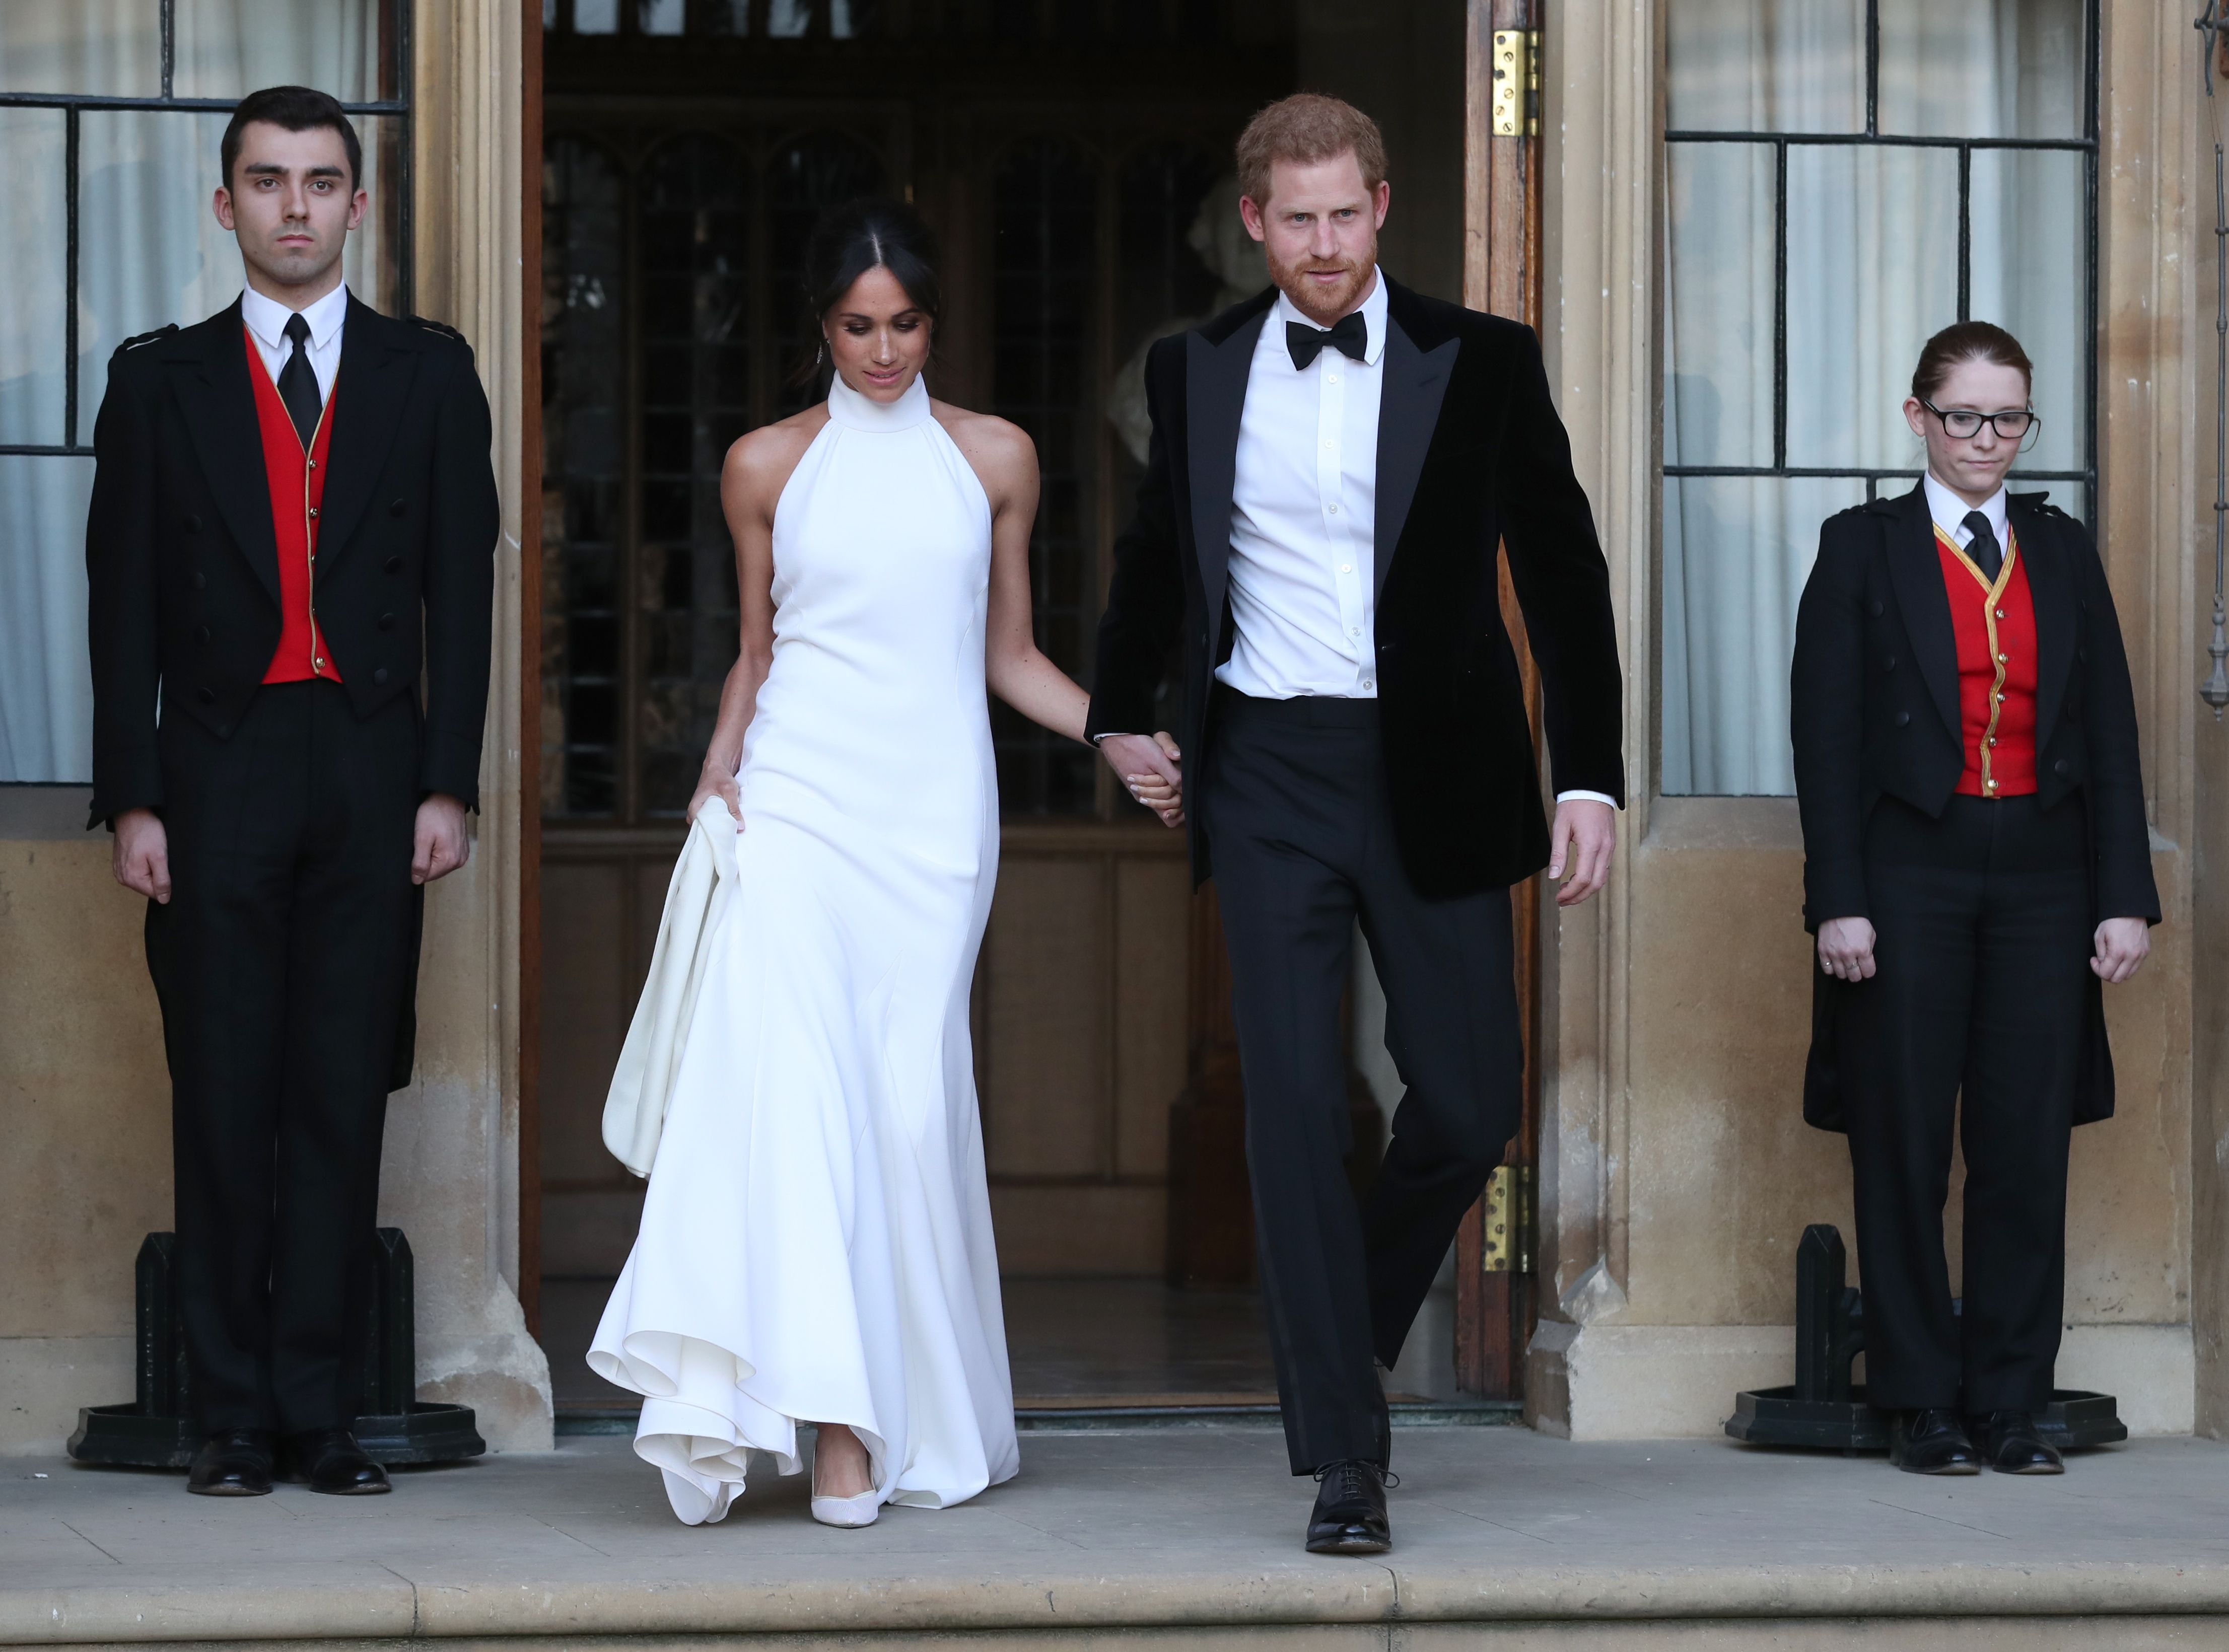 Newly married Meghan Markle, Duchess of Sussex, wears a Stella McCartney wedding reception dress while leaving Windsor Castle in Windsor on May 19, 2018 after their wedding to attend an evening reception at Frogmore House.